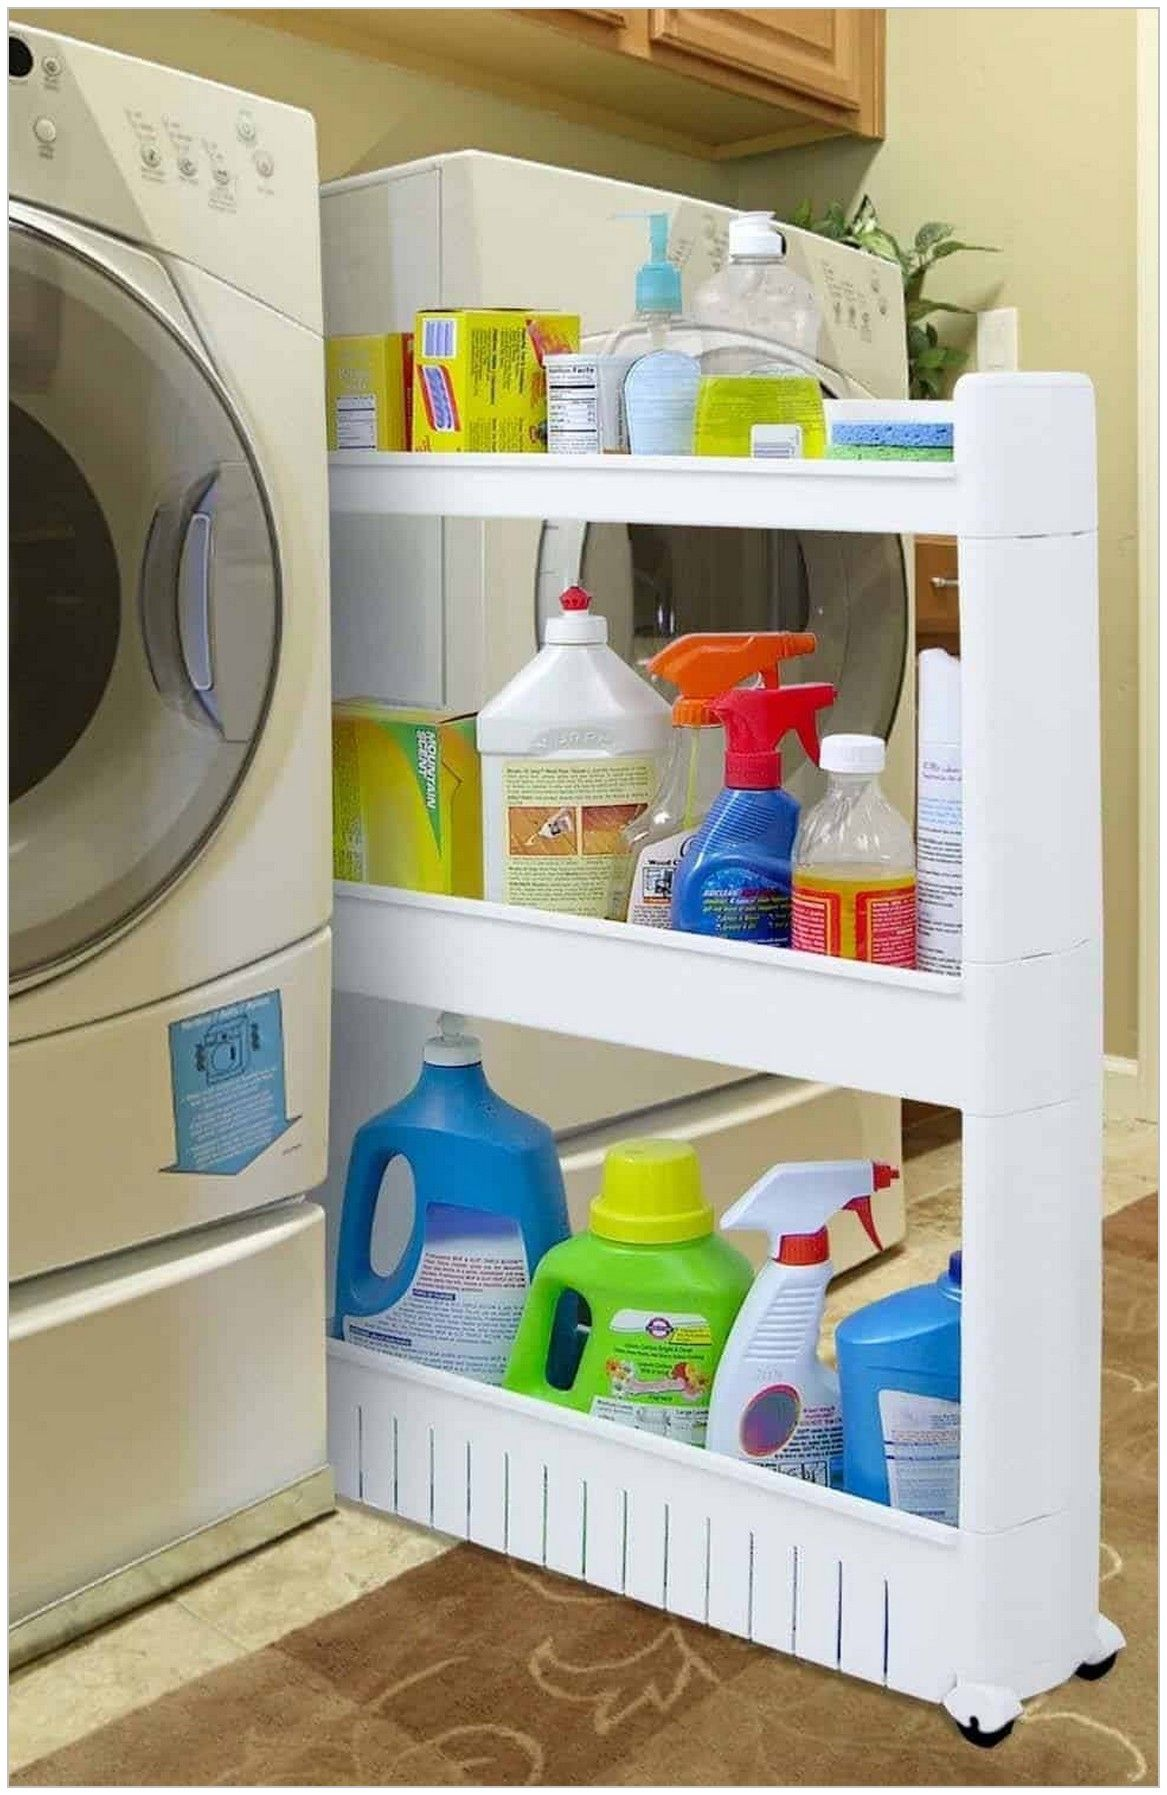 Laundry room organization has come a long way. From dark and disorganized, to bright and functional; laundry room's are now a focal point in the home.  #LaundryRoomOrganization #LaundryRoomDesign #StorageOrganization #StorageIdeas #OrganizedLaundryRooms #OrganizedHome #LaundryDetergentStorage #OrganizationIdeasForTheHome #OrganizedBedroom